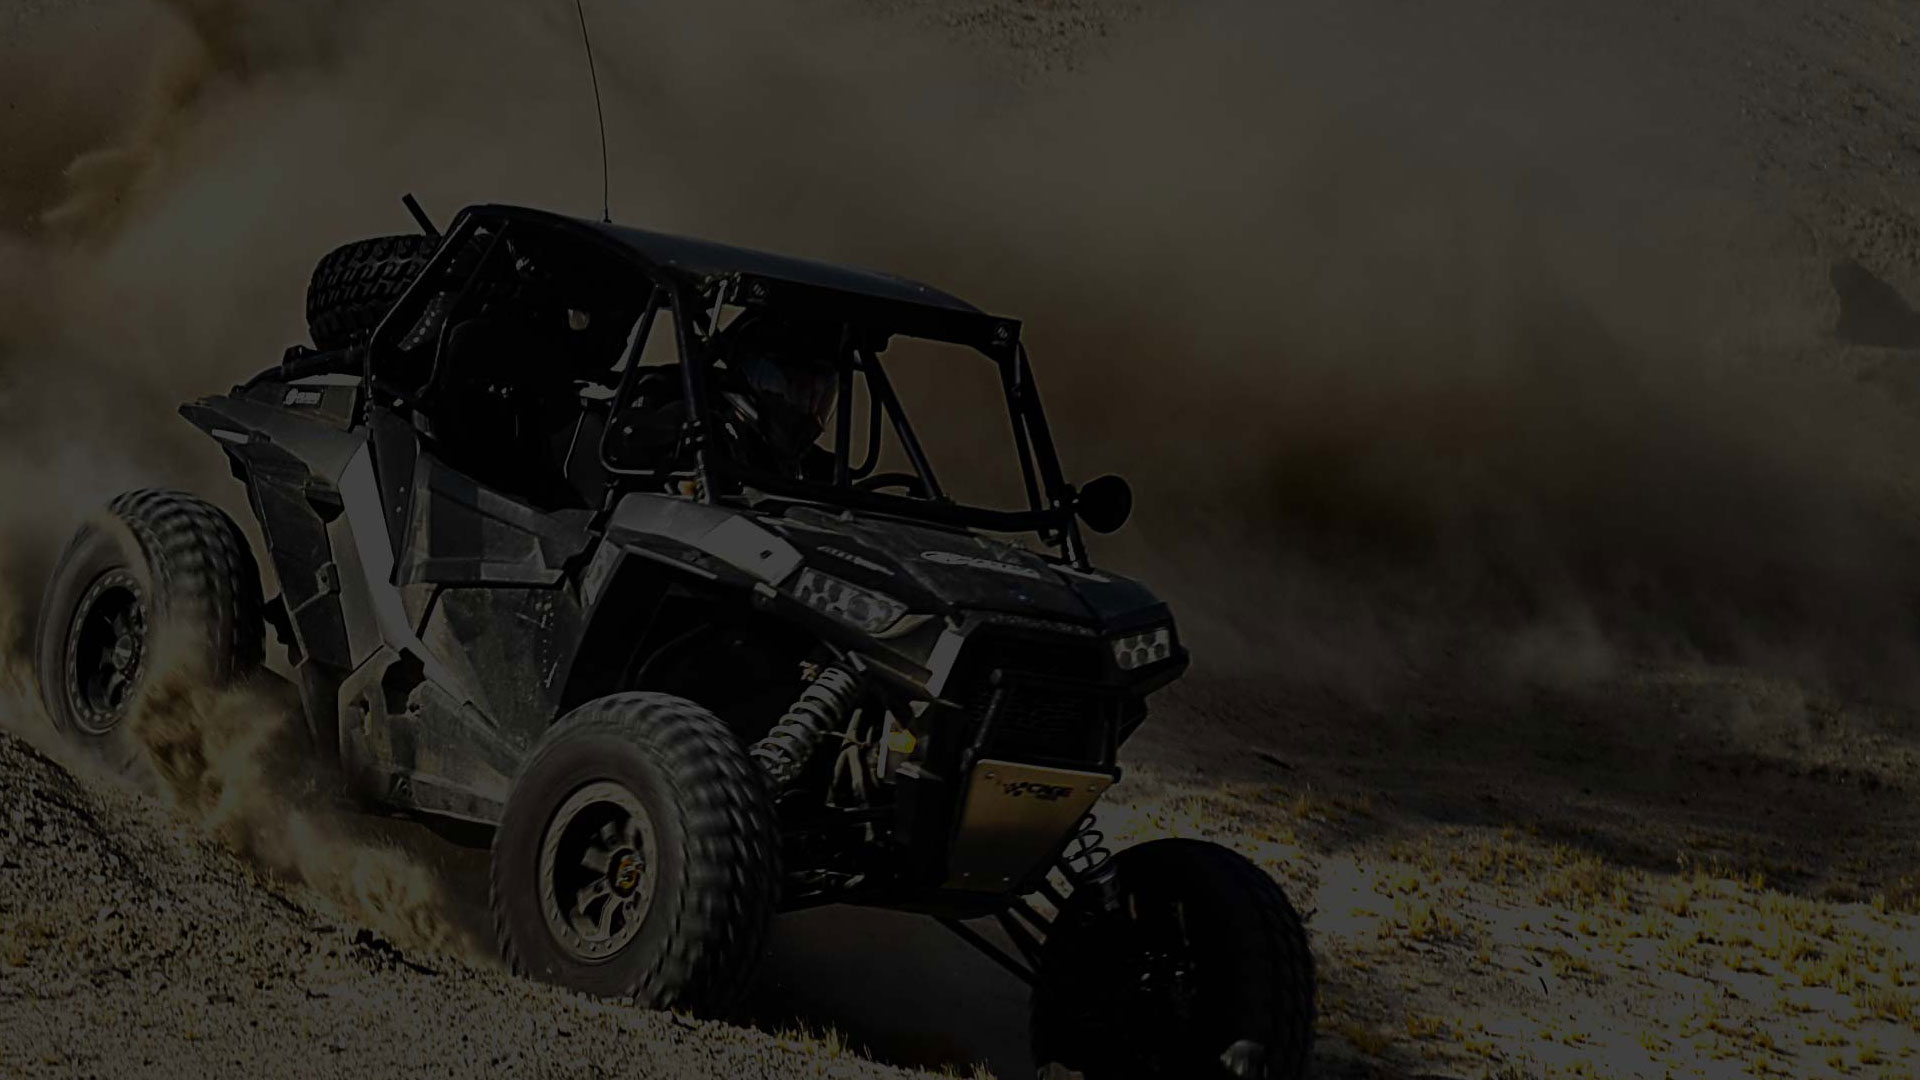 Adventure Kings   AK Hard Parts - High Quality SXS Parts and Accessories